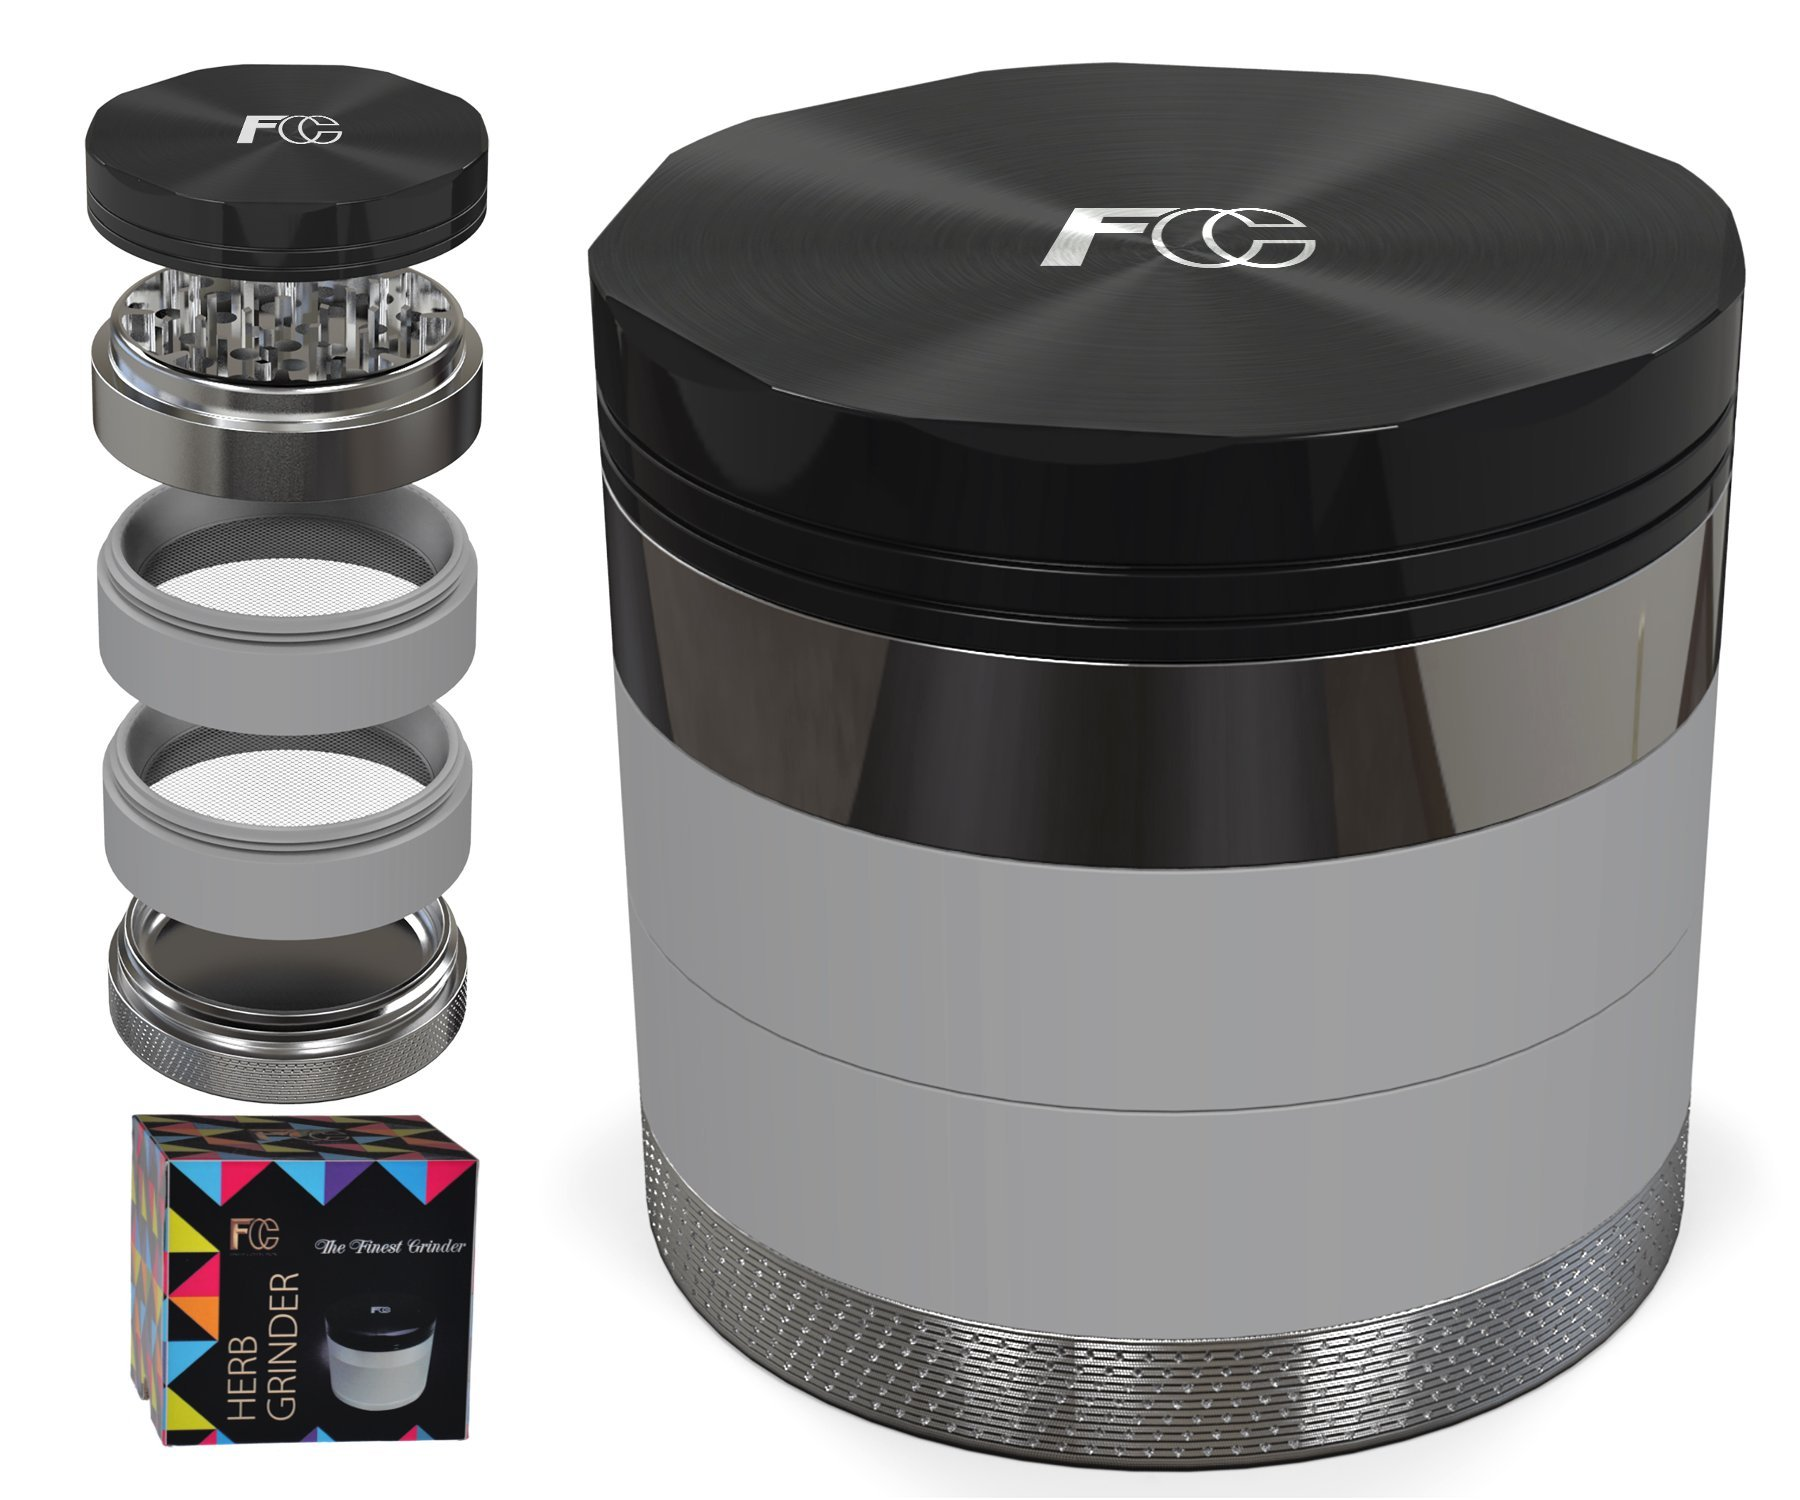 """TOP Premium 5 PIECE Herb Grinder in Stylish Giftbox - Large Unique 2.5"""" Aircraft Aluminum Mill with Diamond Teeth & Pollen Catcher for weed tobacco spices. Luxury Pouch included, Ebook & Scraper"""